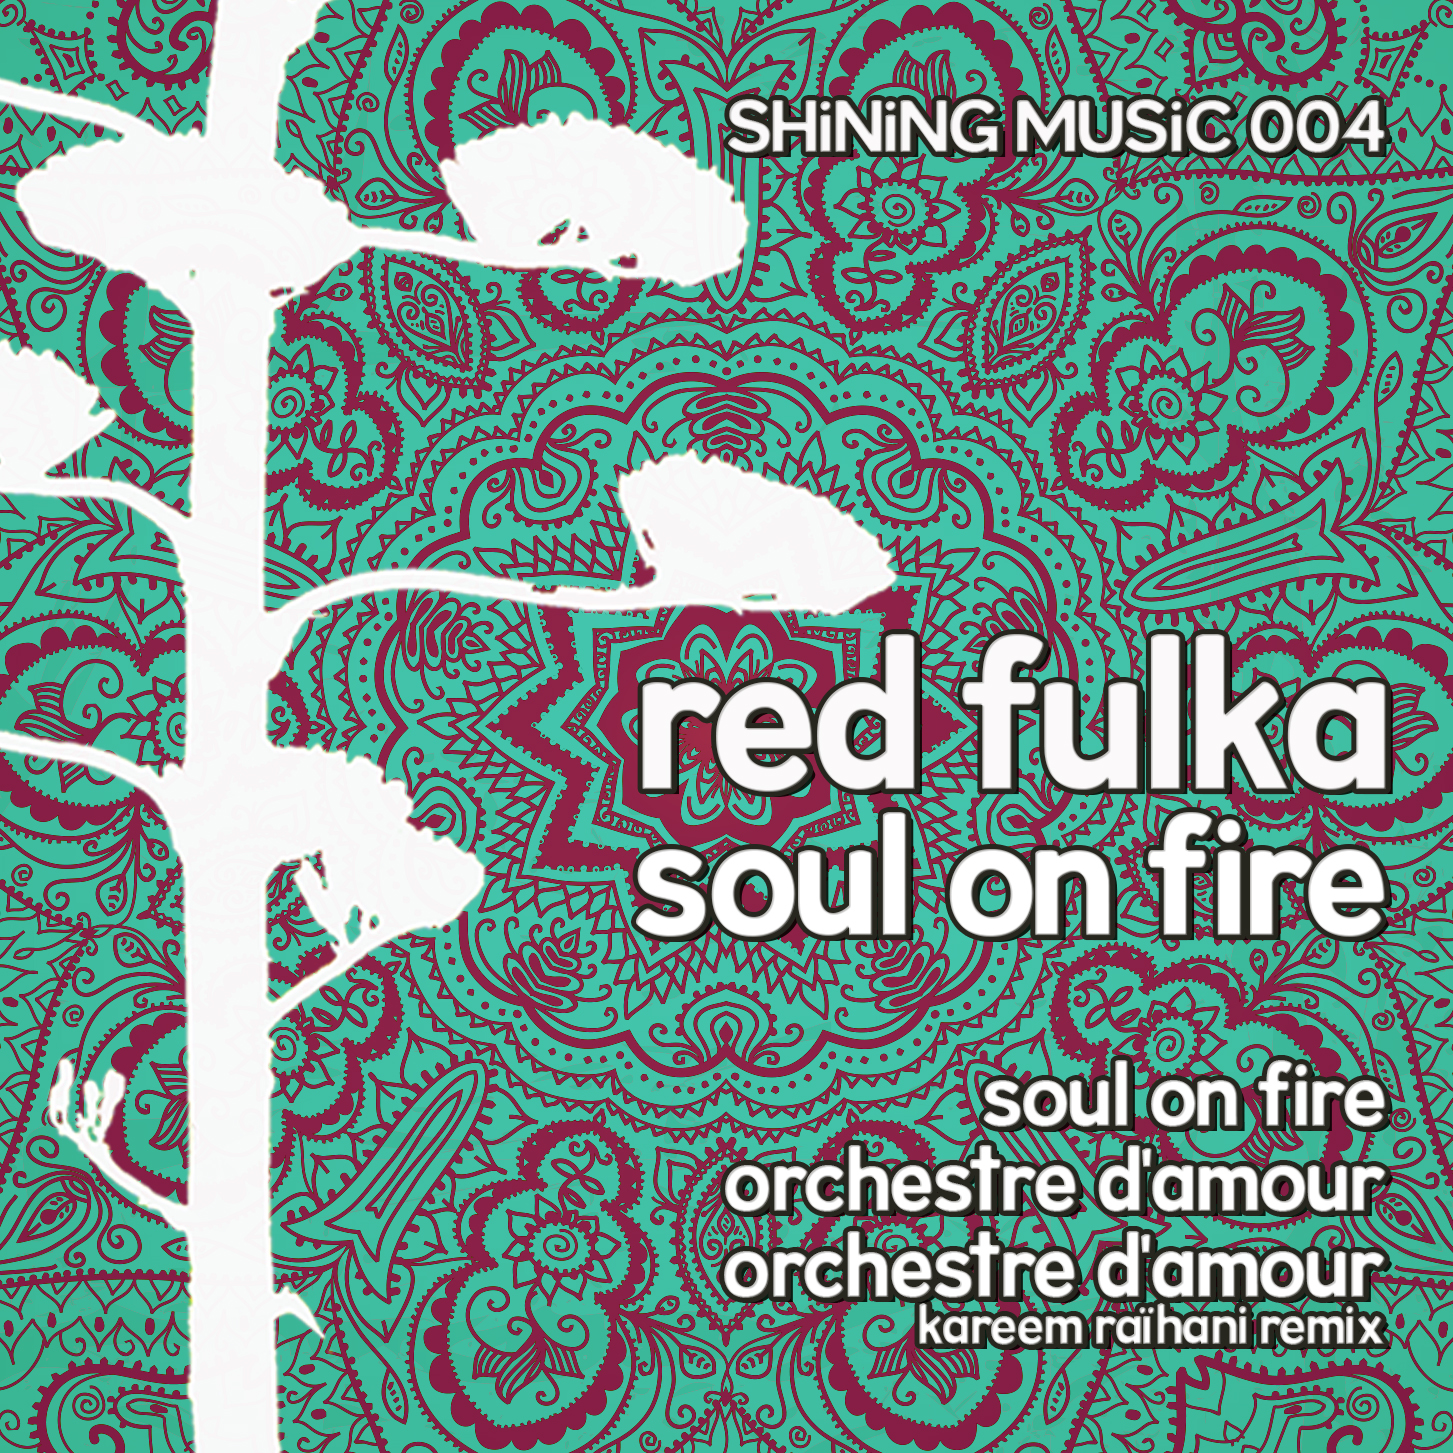 SHiNiNG MUSiC 04: Soul on Fire